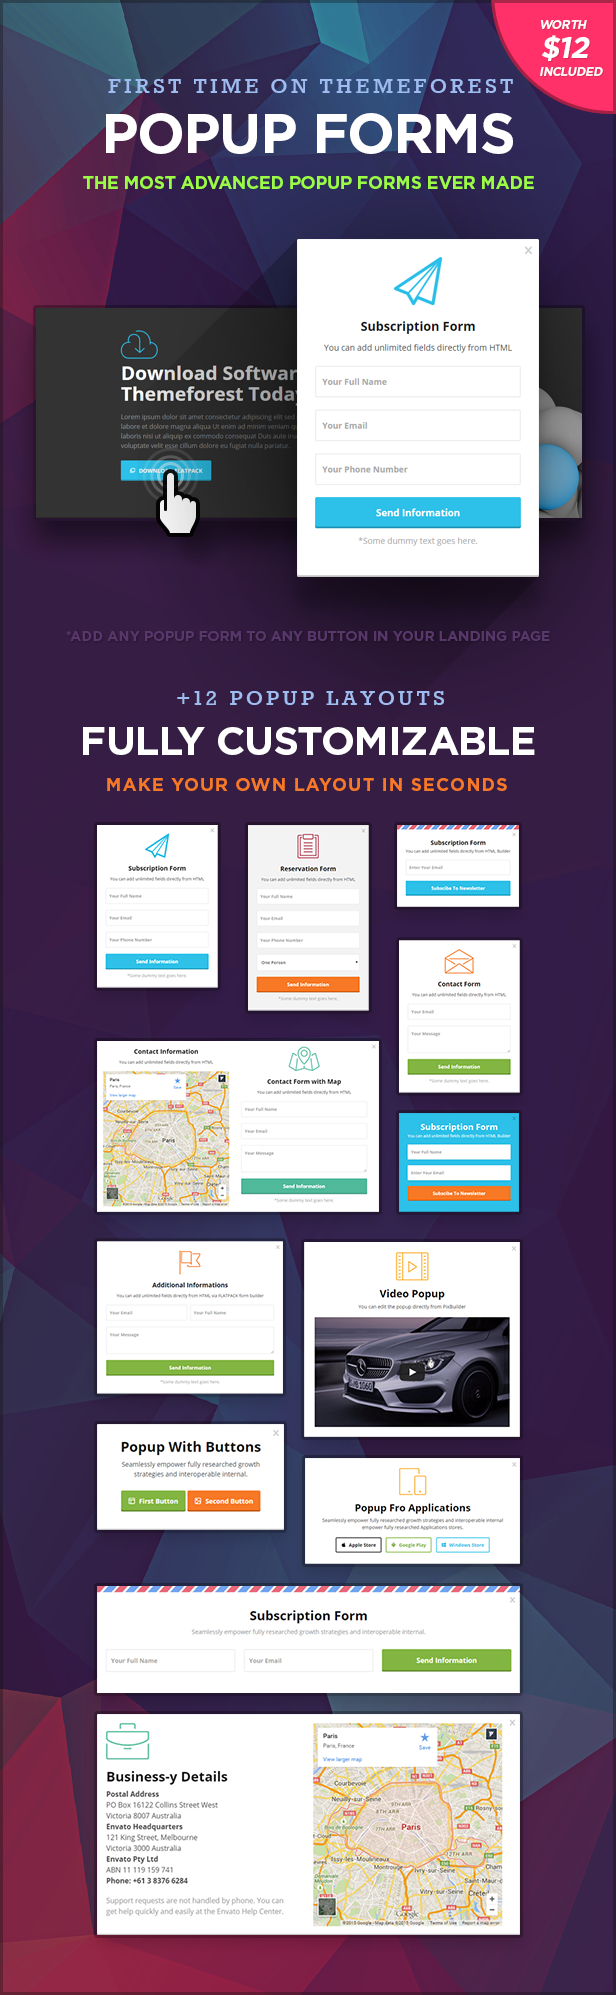 popups - FLATPACK – Landing Pages Pack With Page Builder